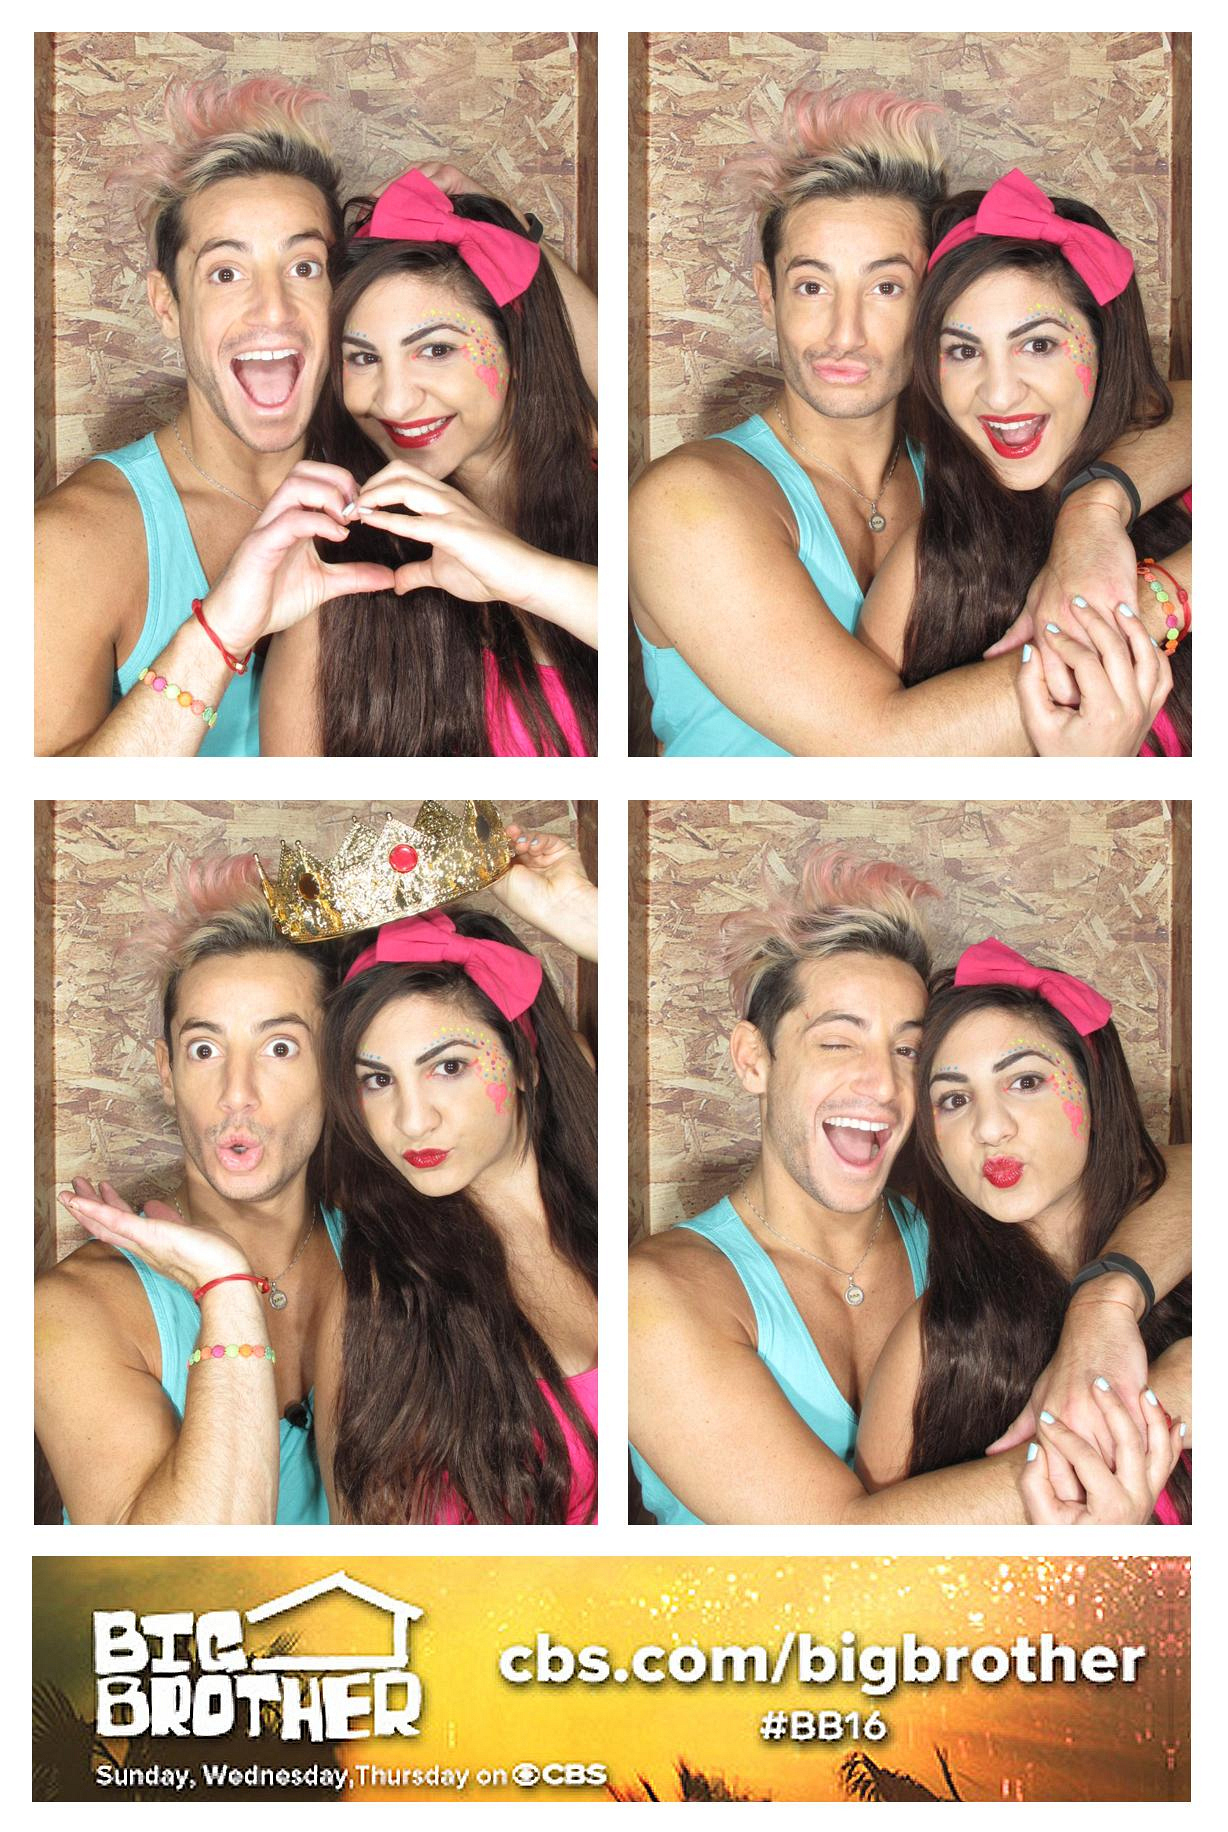 Victoria and Frankie